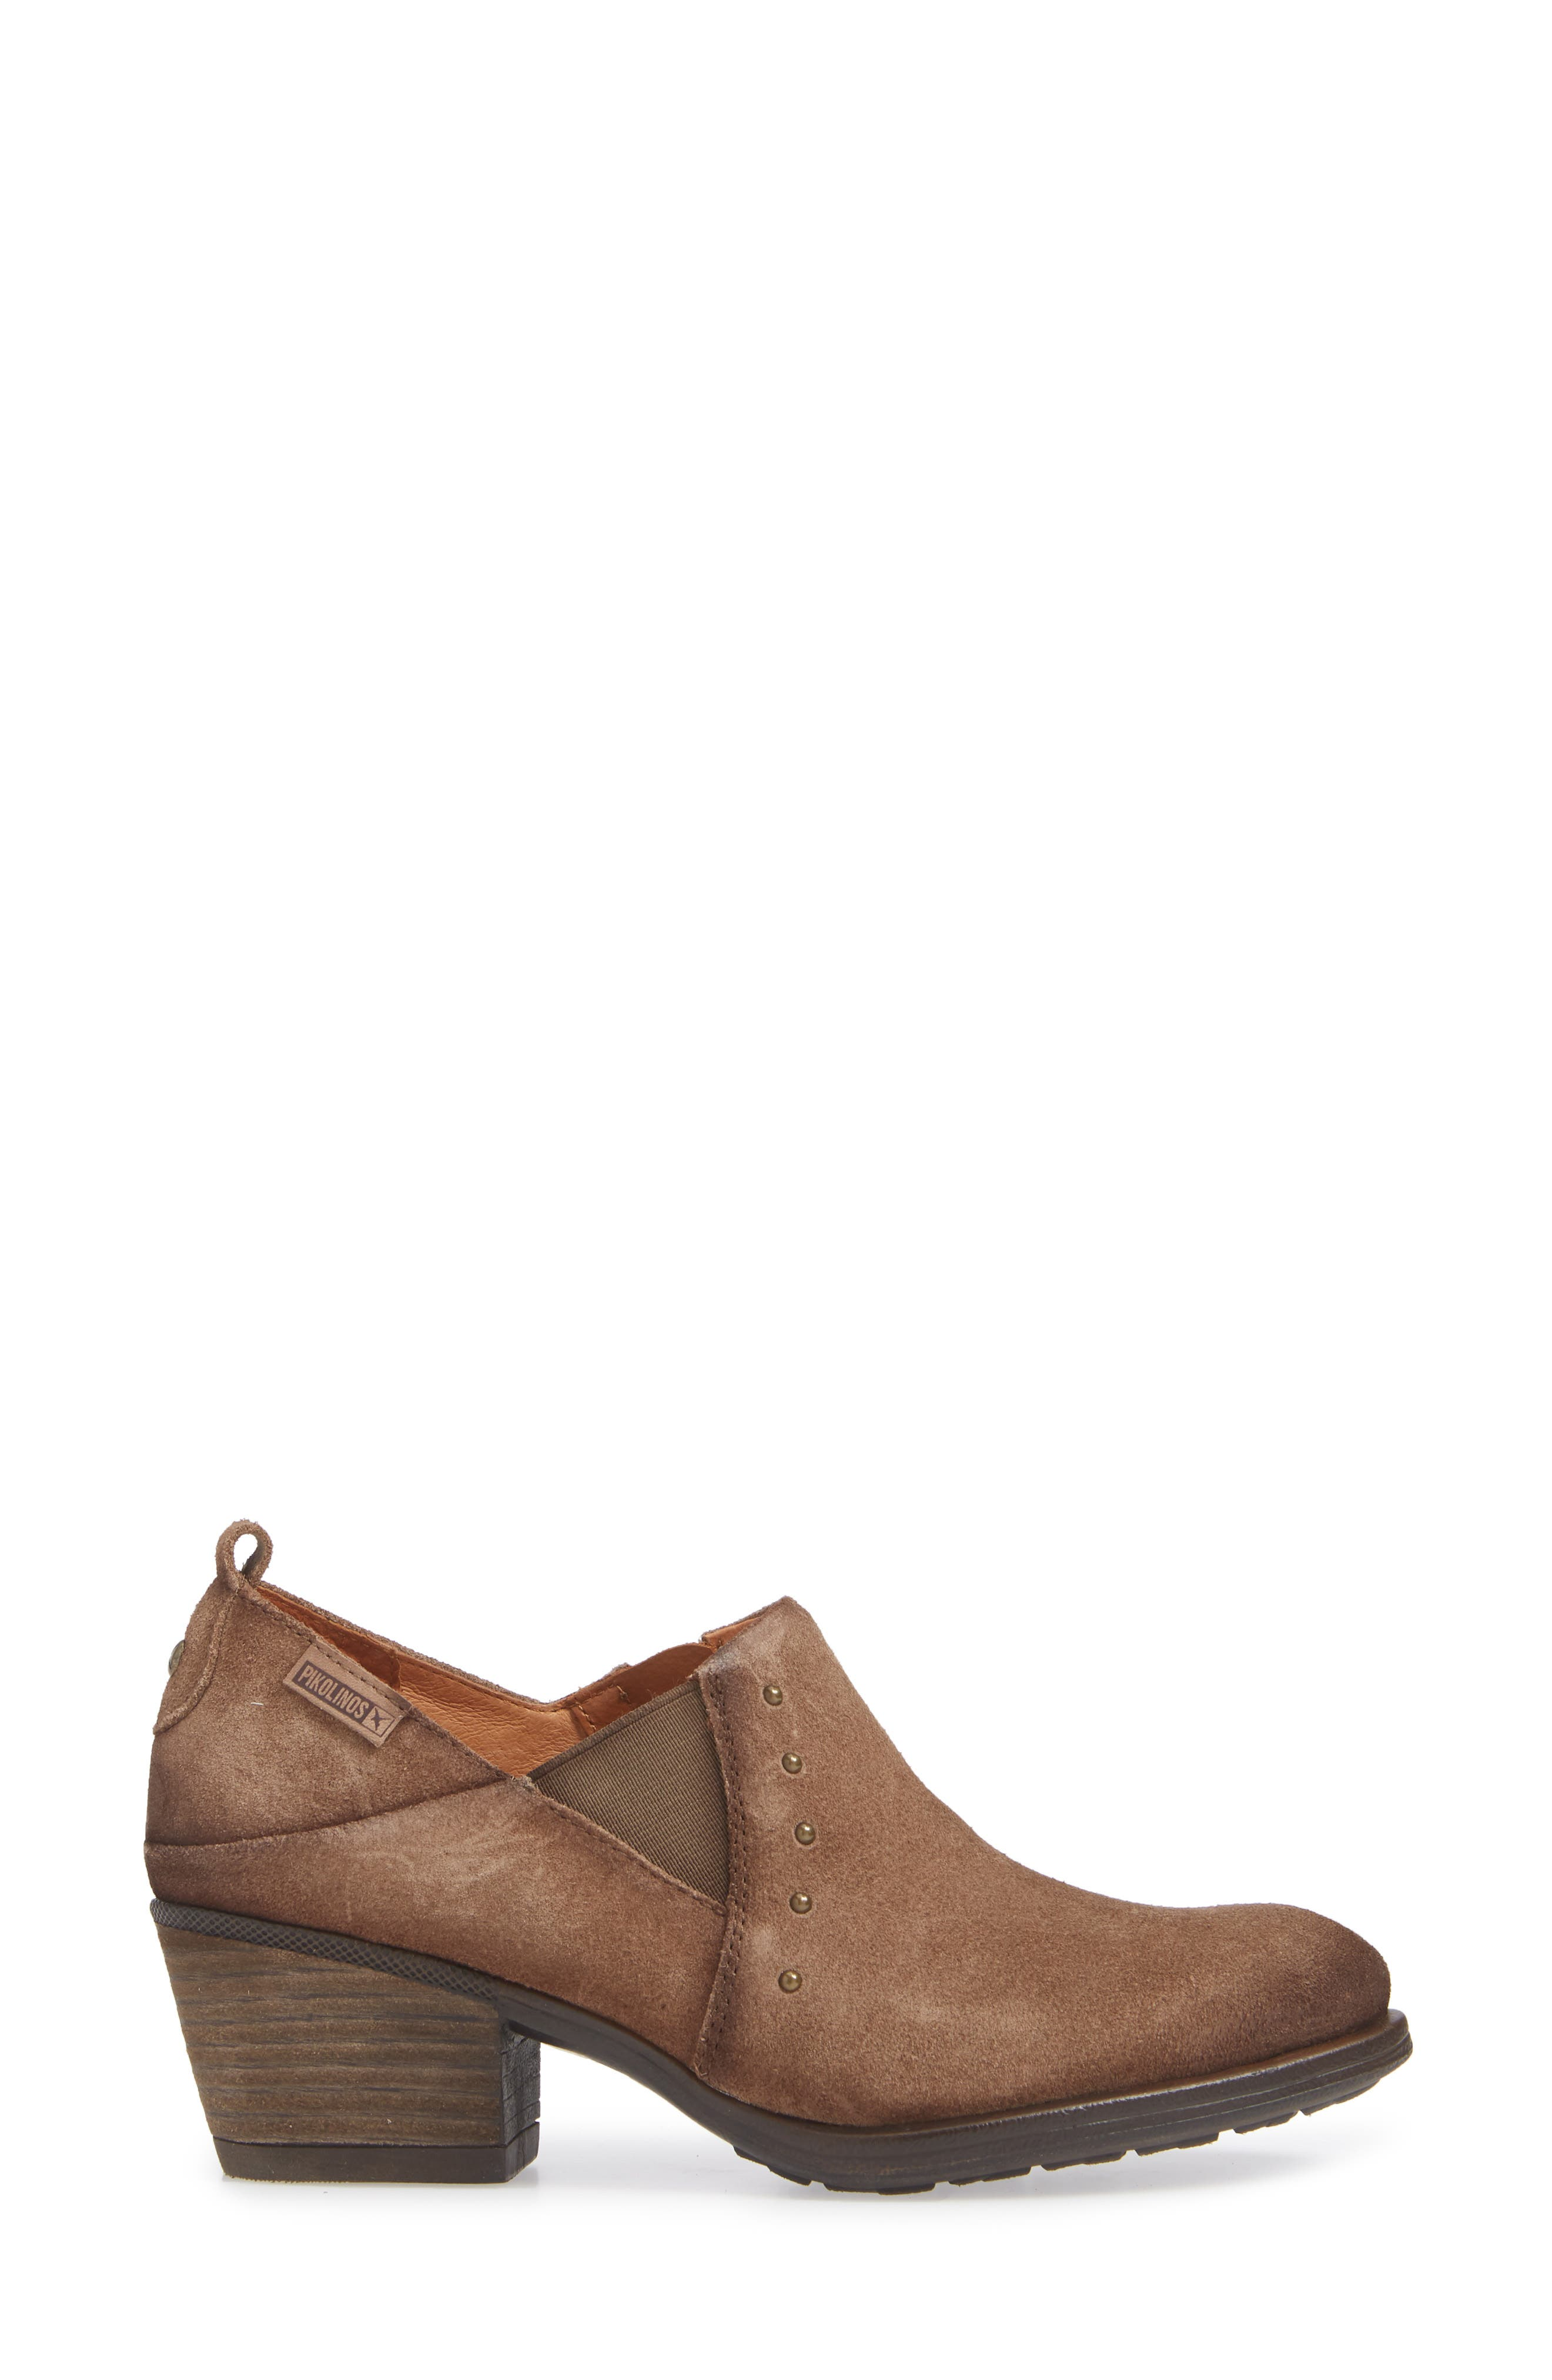 Baquiera Ankle Bootie,                             Alternate thumbnail 3, color,                             STONE SUEDE